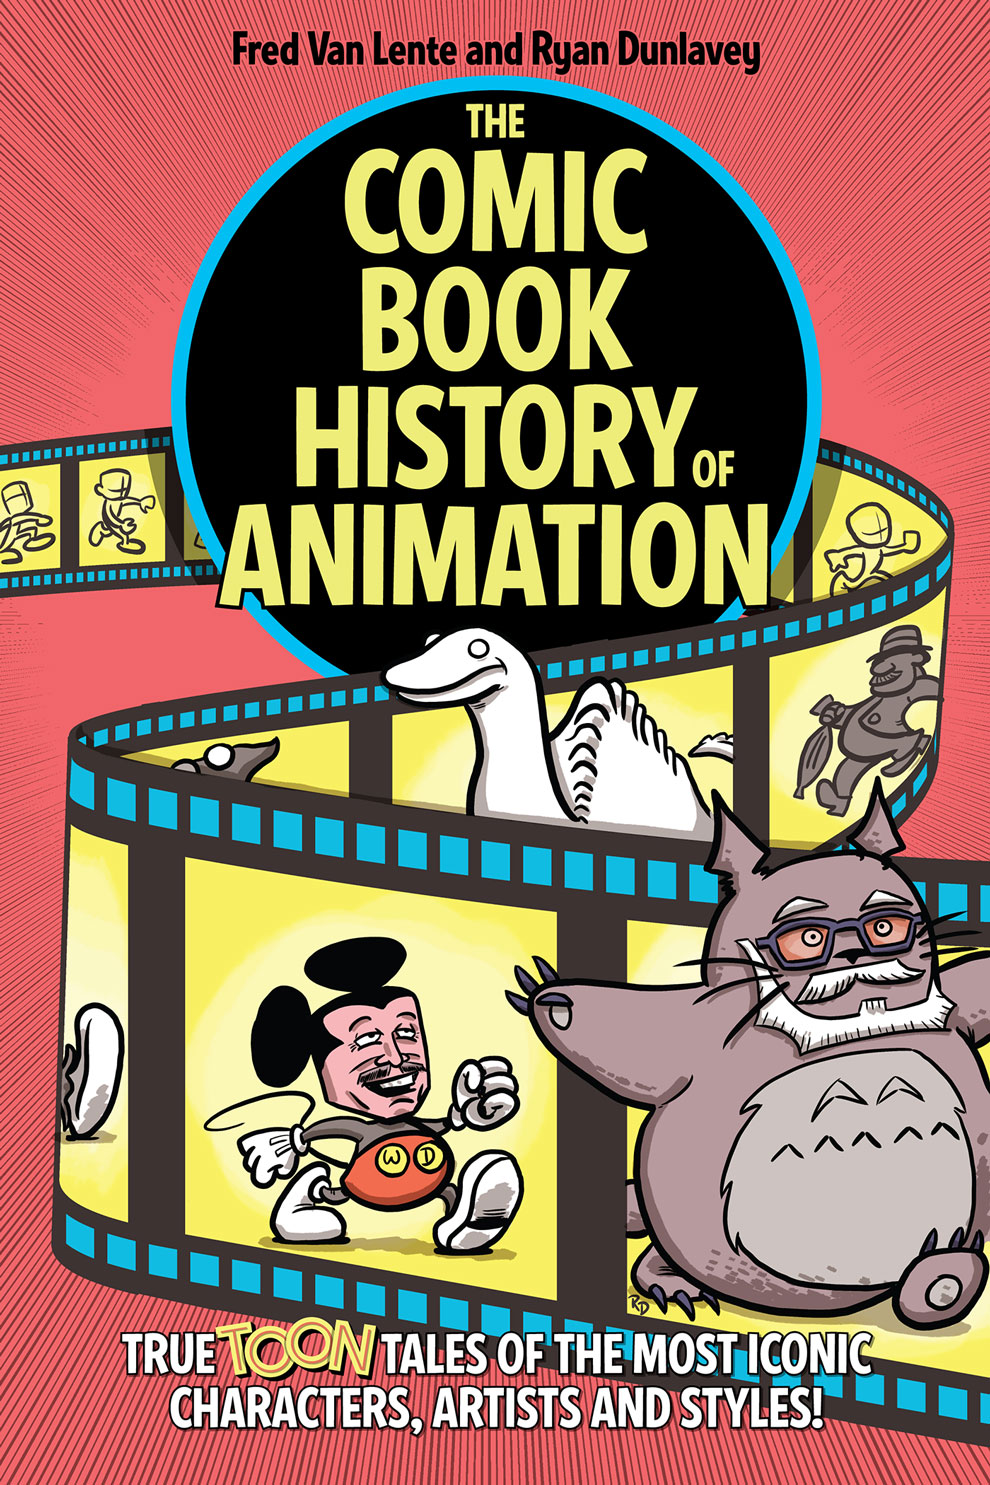 The Comic Book History of Animation